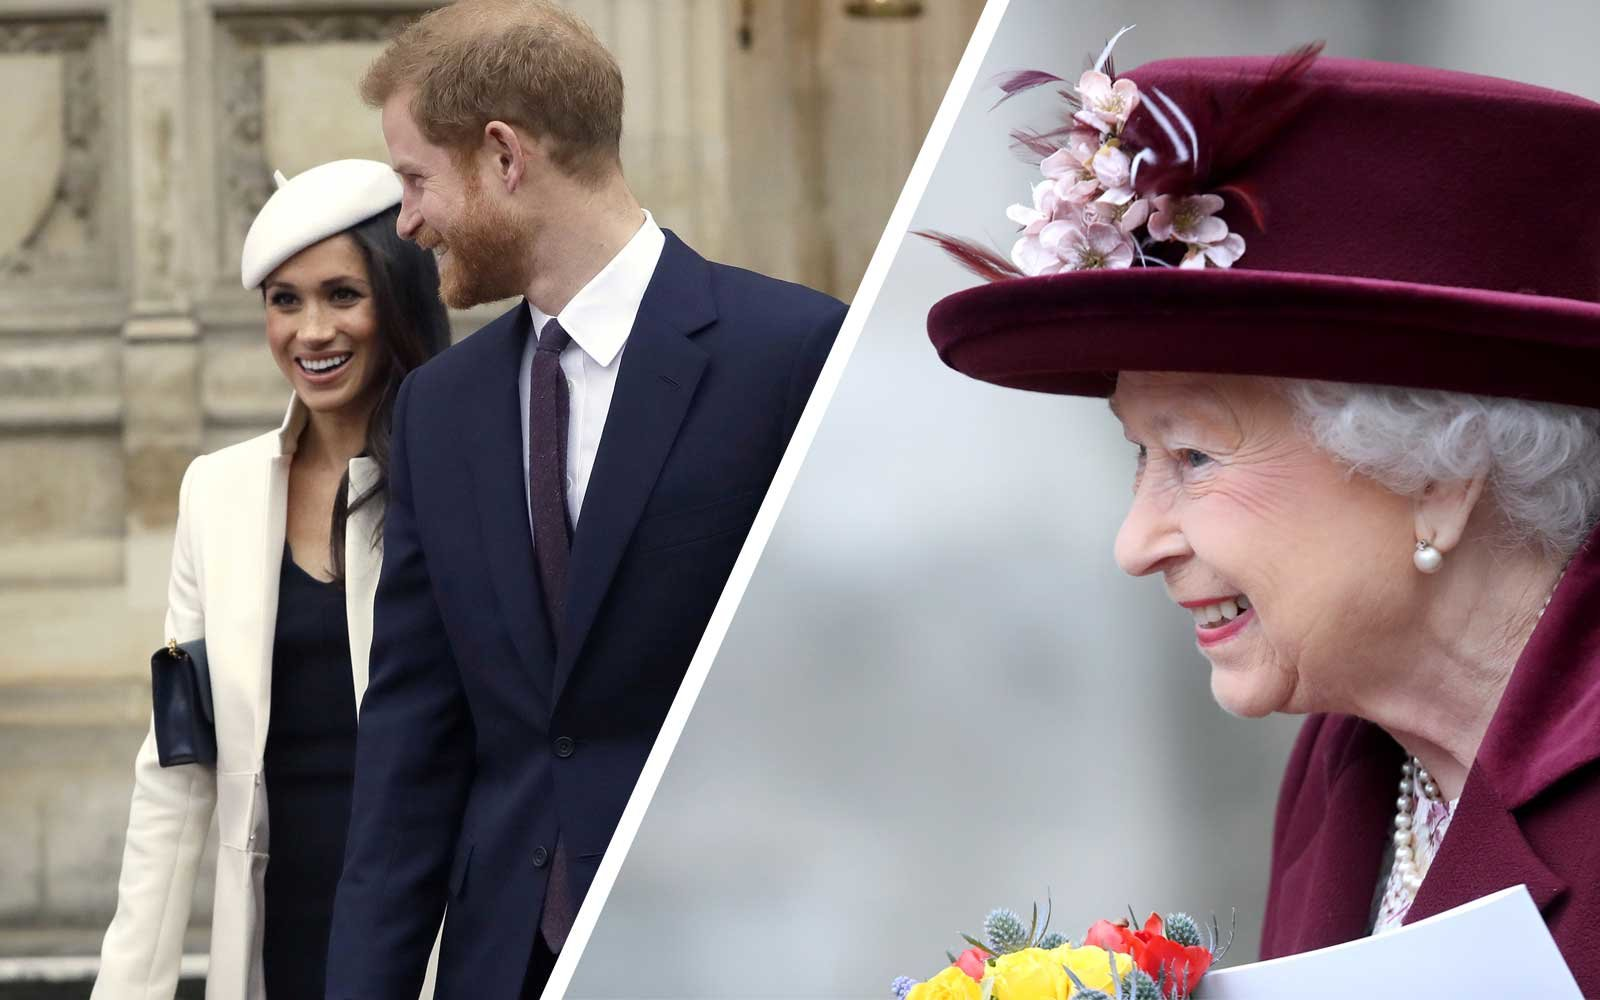 The Queen Just Gave Her Official Blessing For Prince Harry